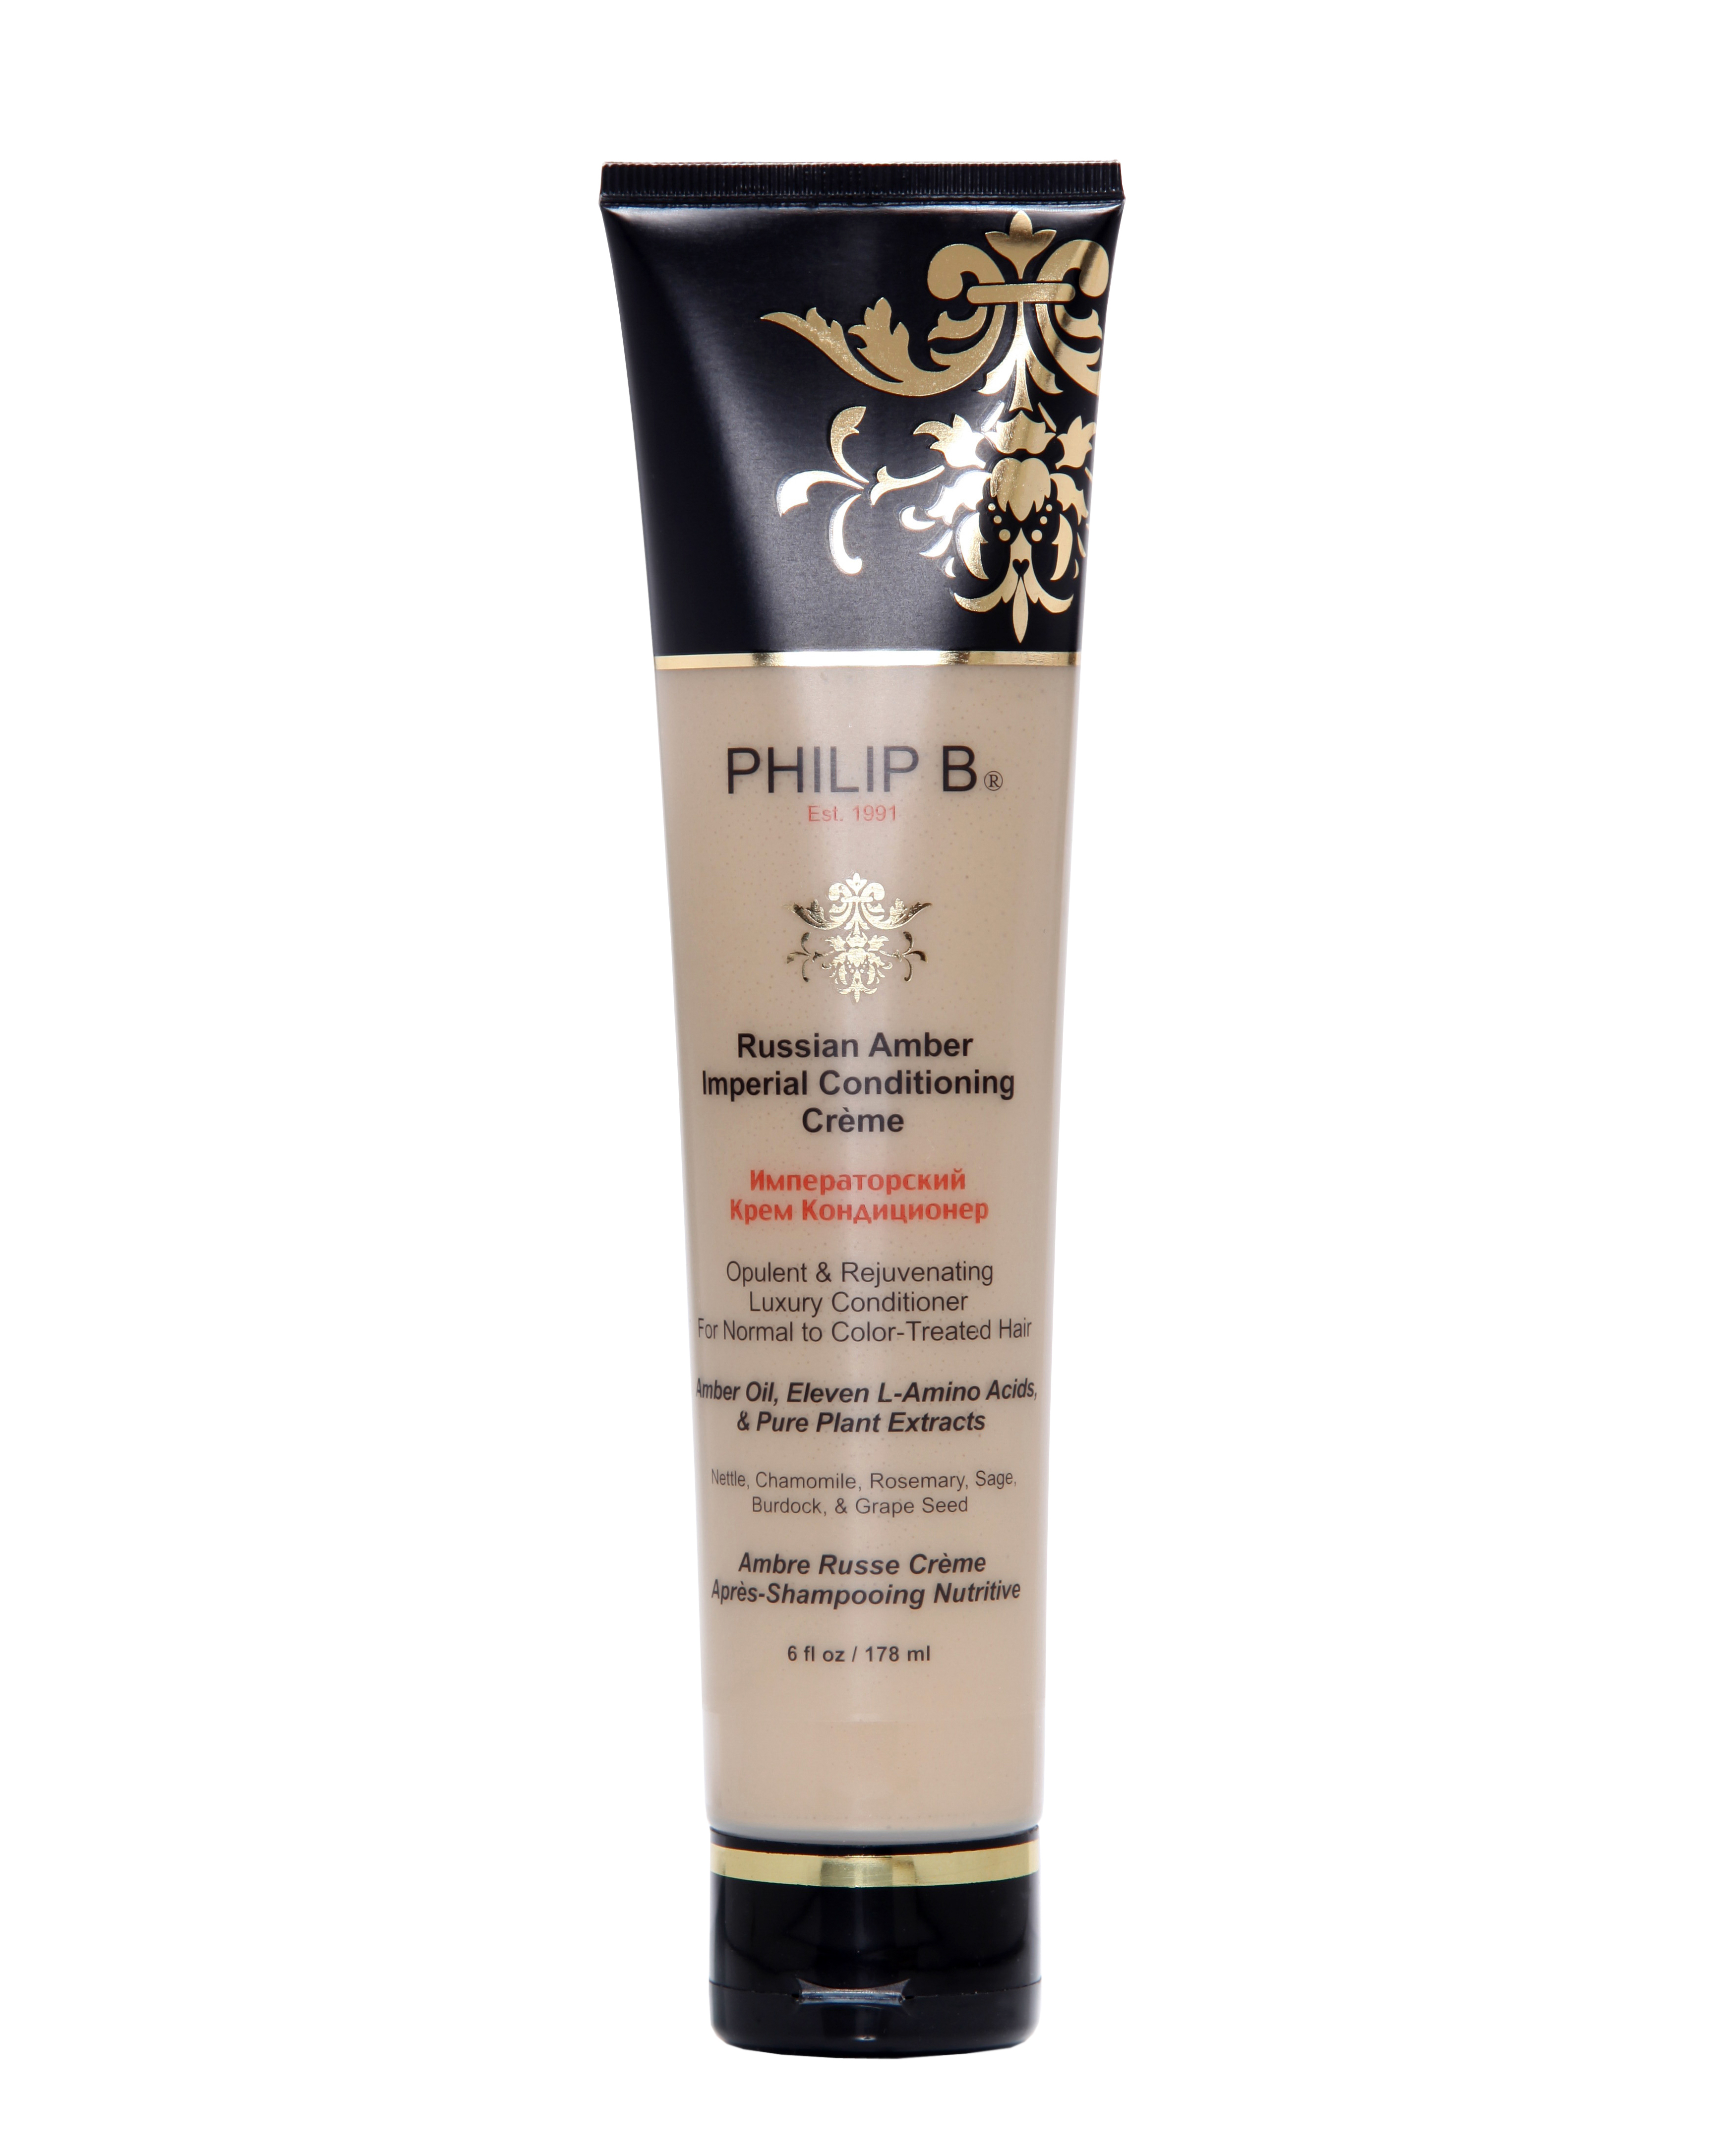 philip-b-russian-amber-imperial-conditioning-creme-0314.jpg